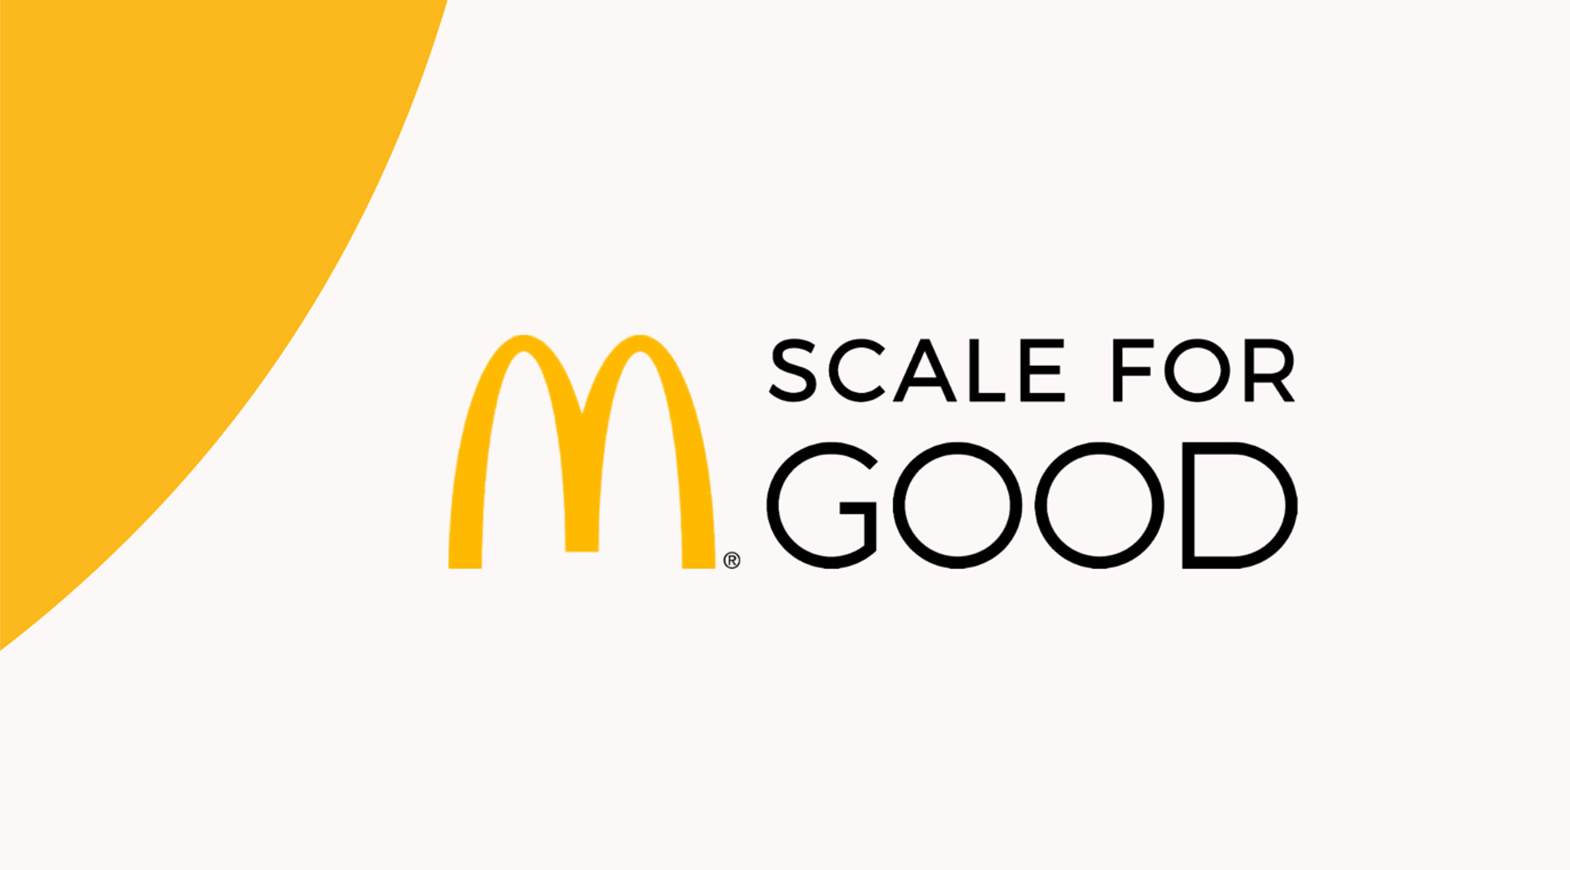 editoriali - Scale for Good